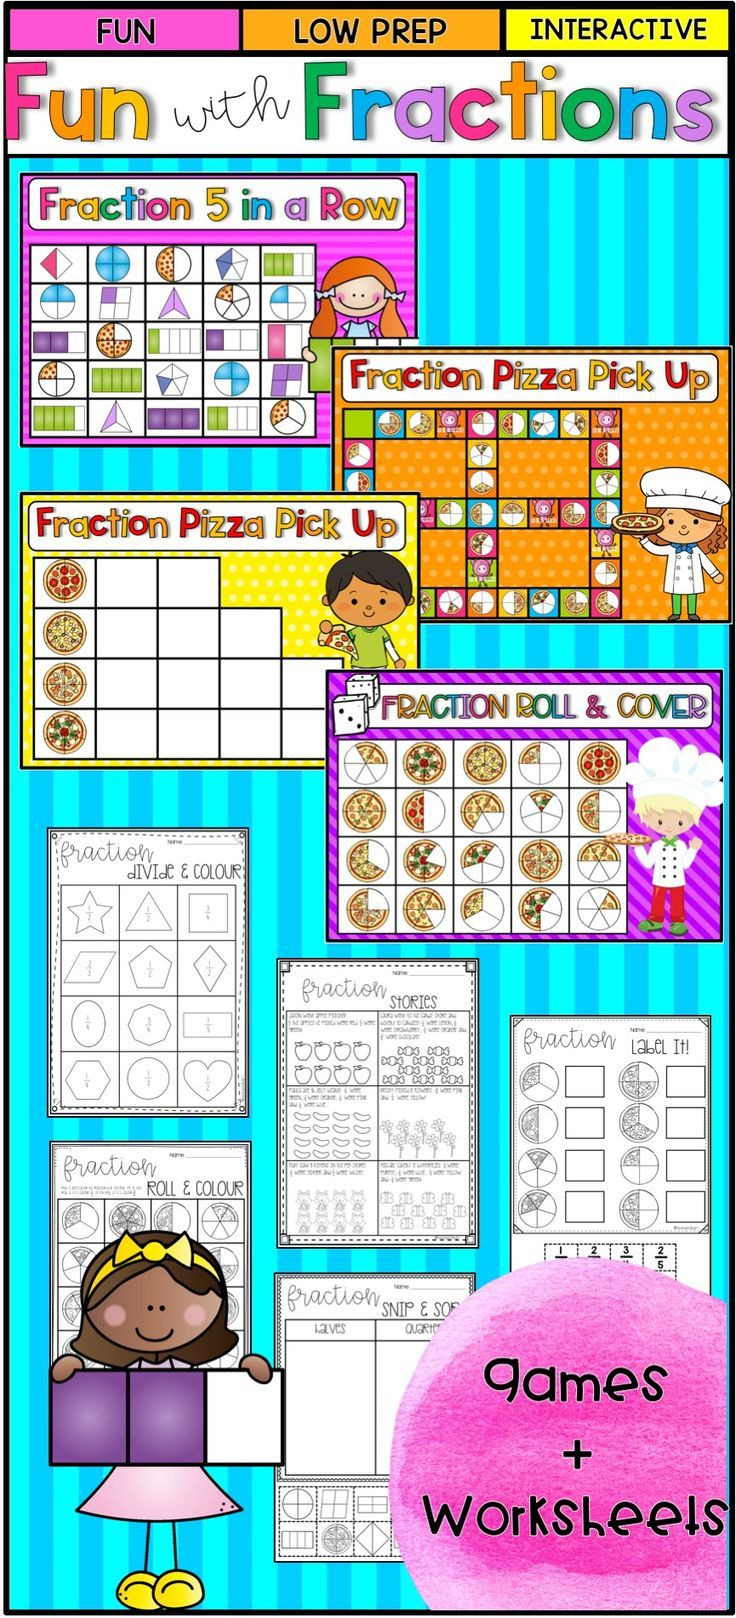 Fraction Games and Worksheets | Worksheets, Gaming and Maths